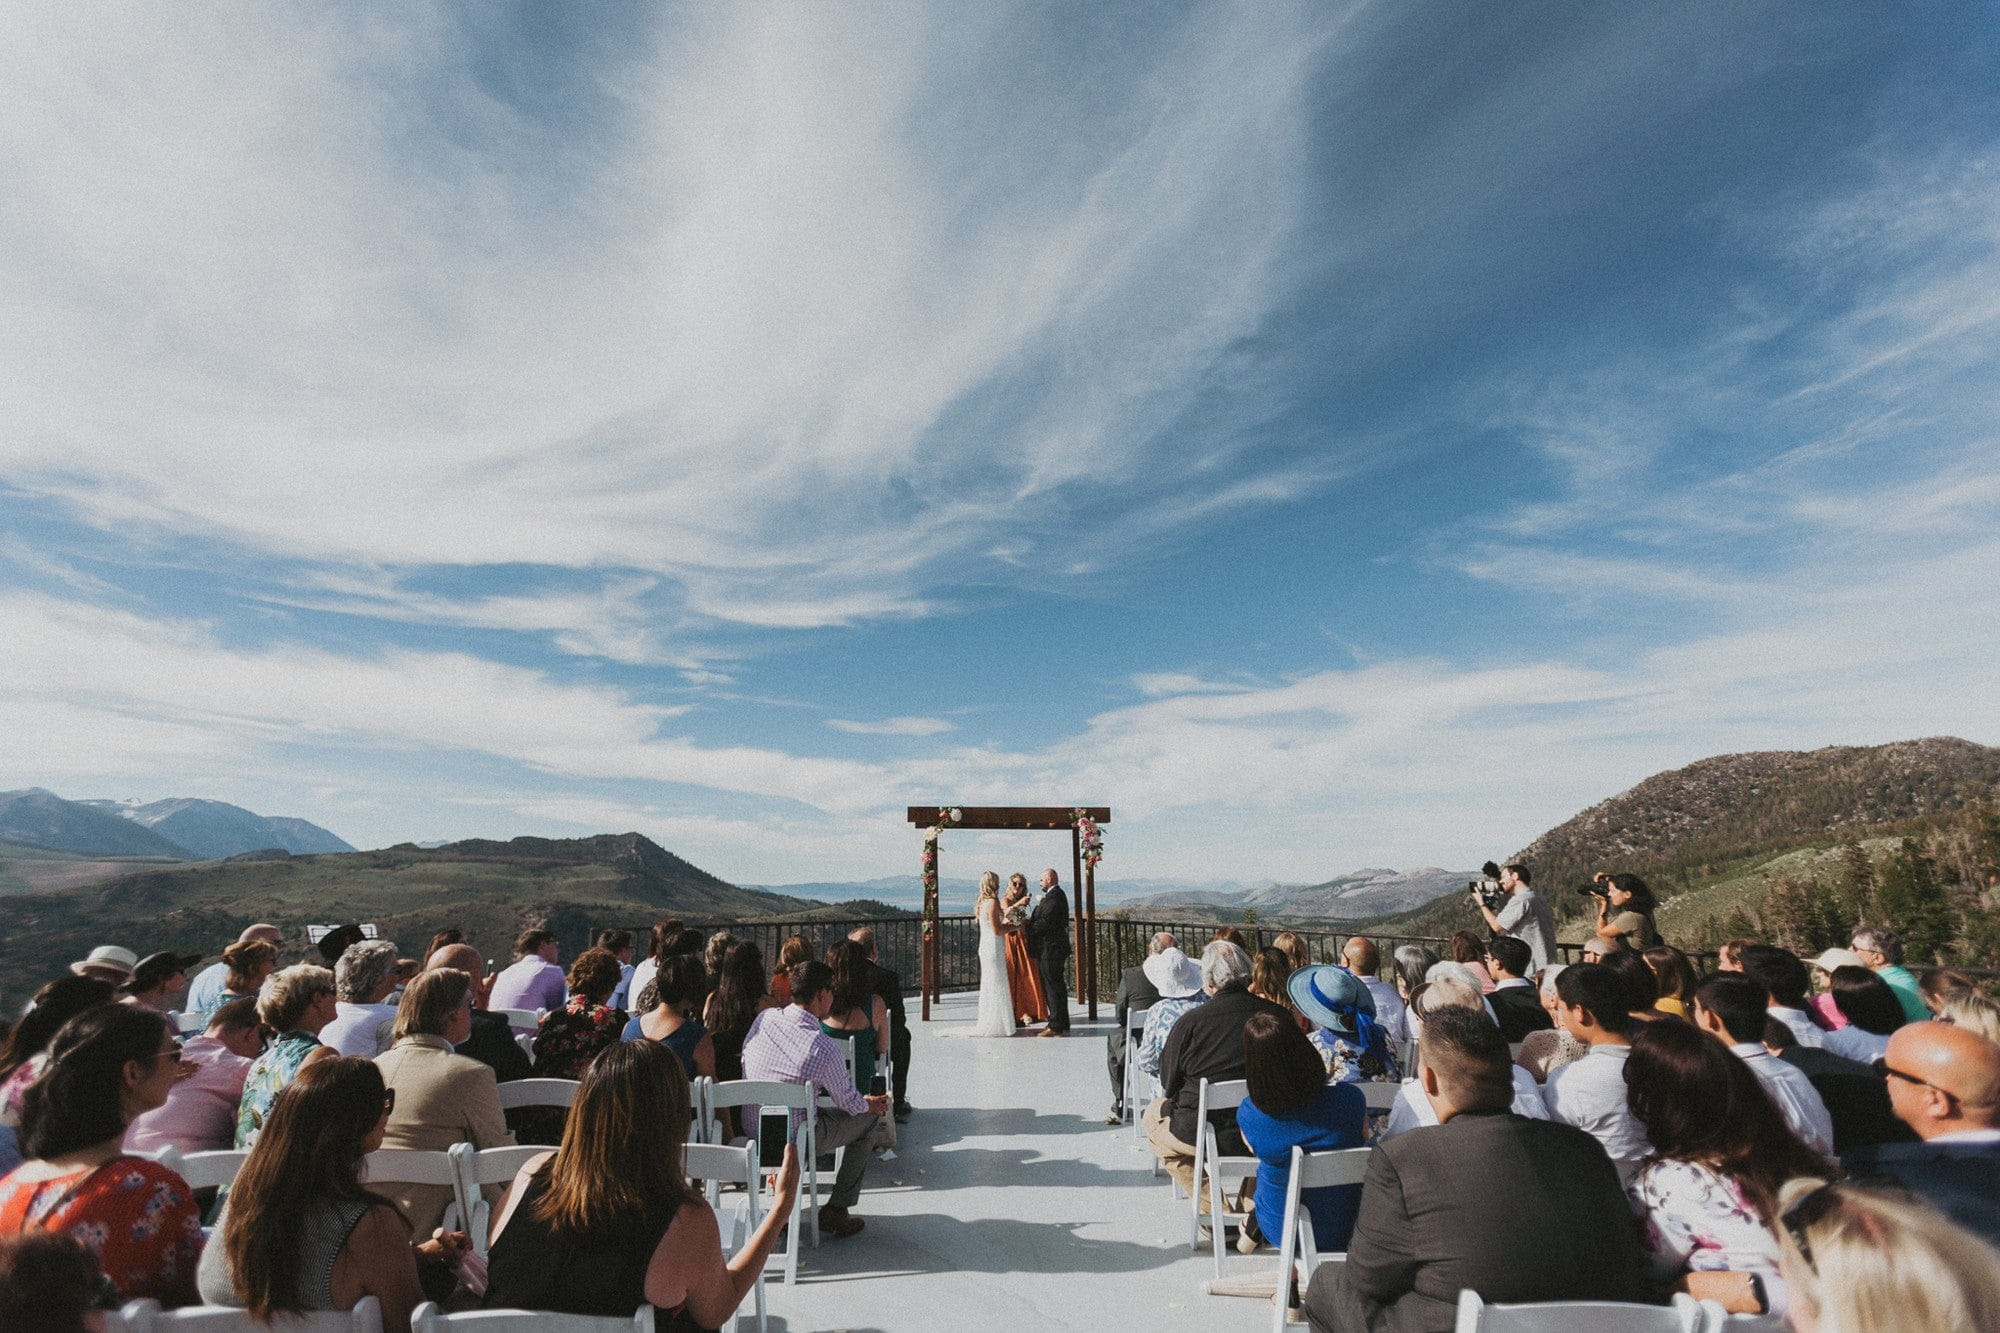 A couple getting married at June Mountain, a wedding venue outside Yosemite.